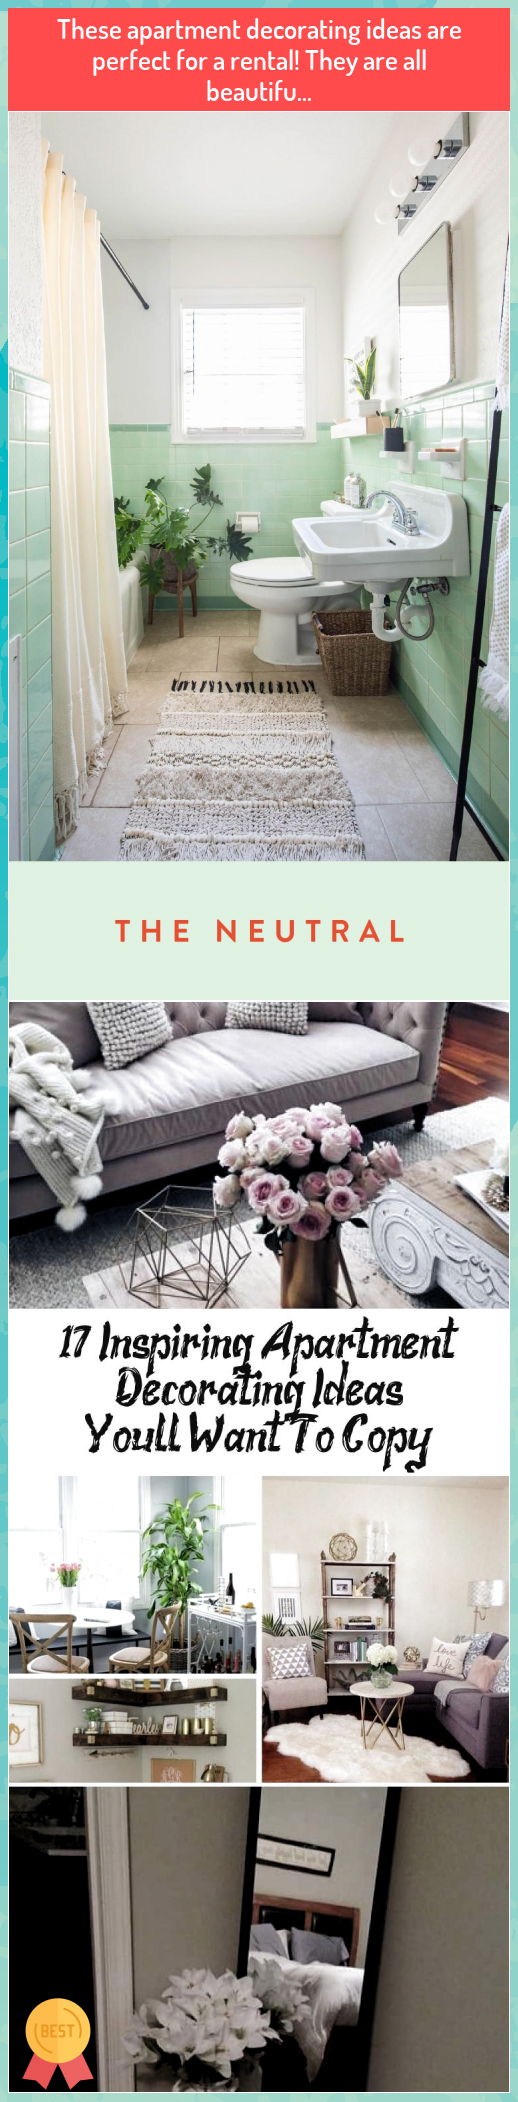 These apartment decorating ideas are perfect for a rental! They are all beautifu... #These #apartment #decorating #ideas #are #perfect #for #rental! #They #are #all #beautifu...